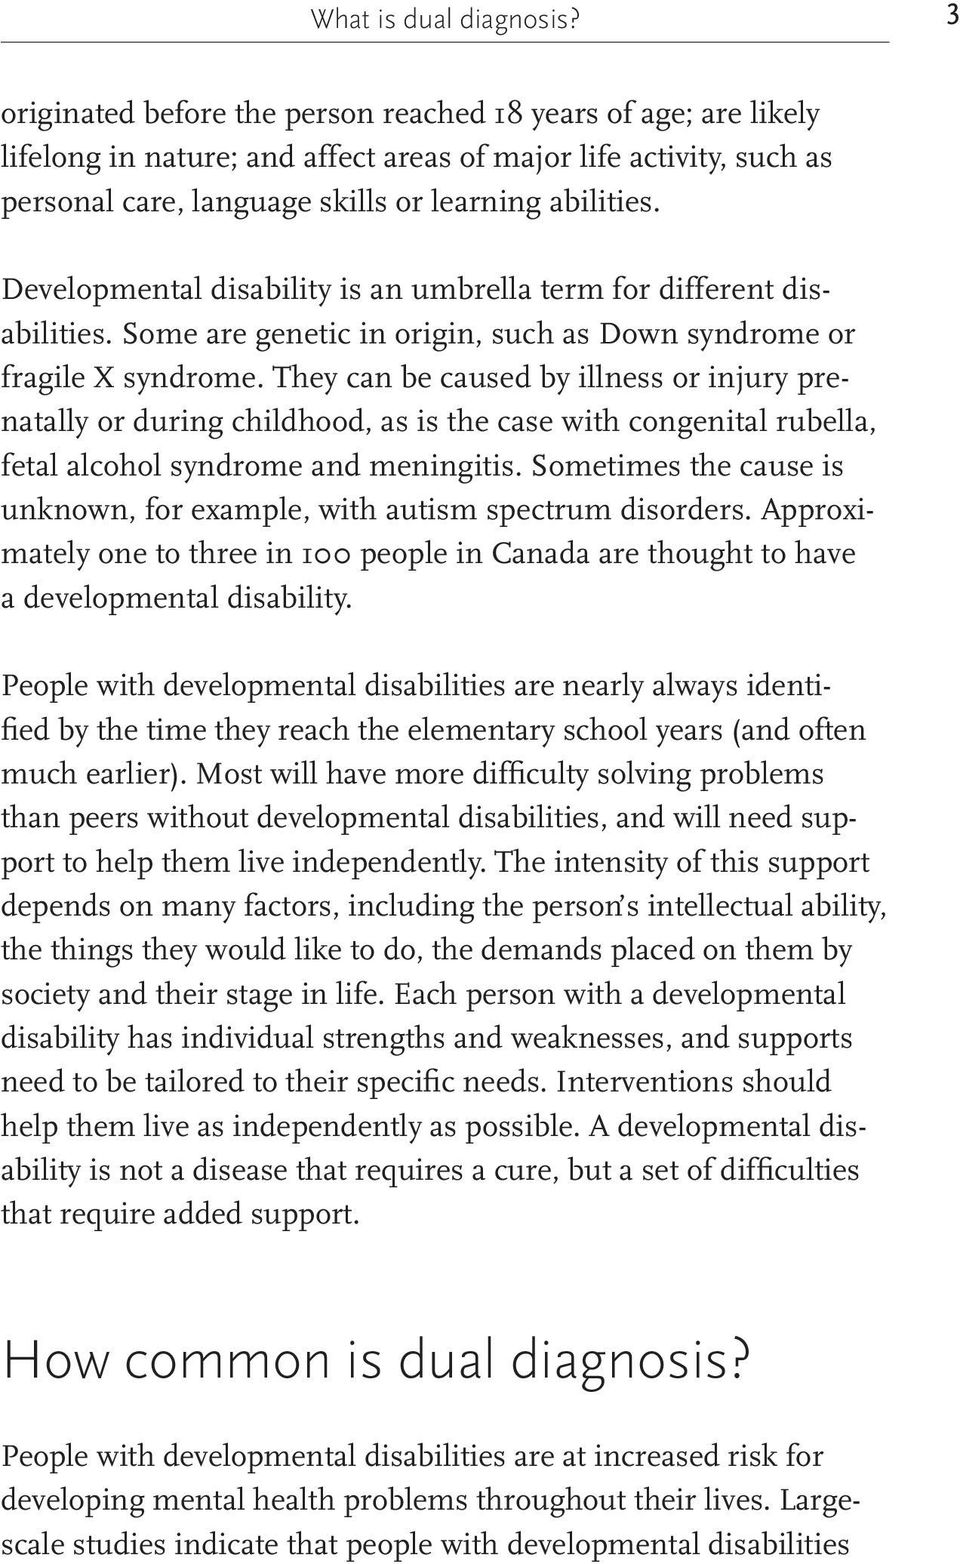 Developmental disability is an umbrella term for different disabilities. Some are genetic in origin, such as Down syndrome or fragile X syndrome.